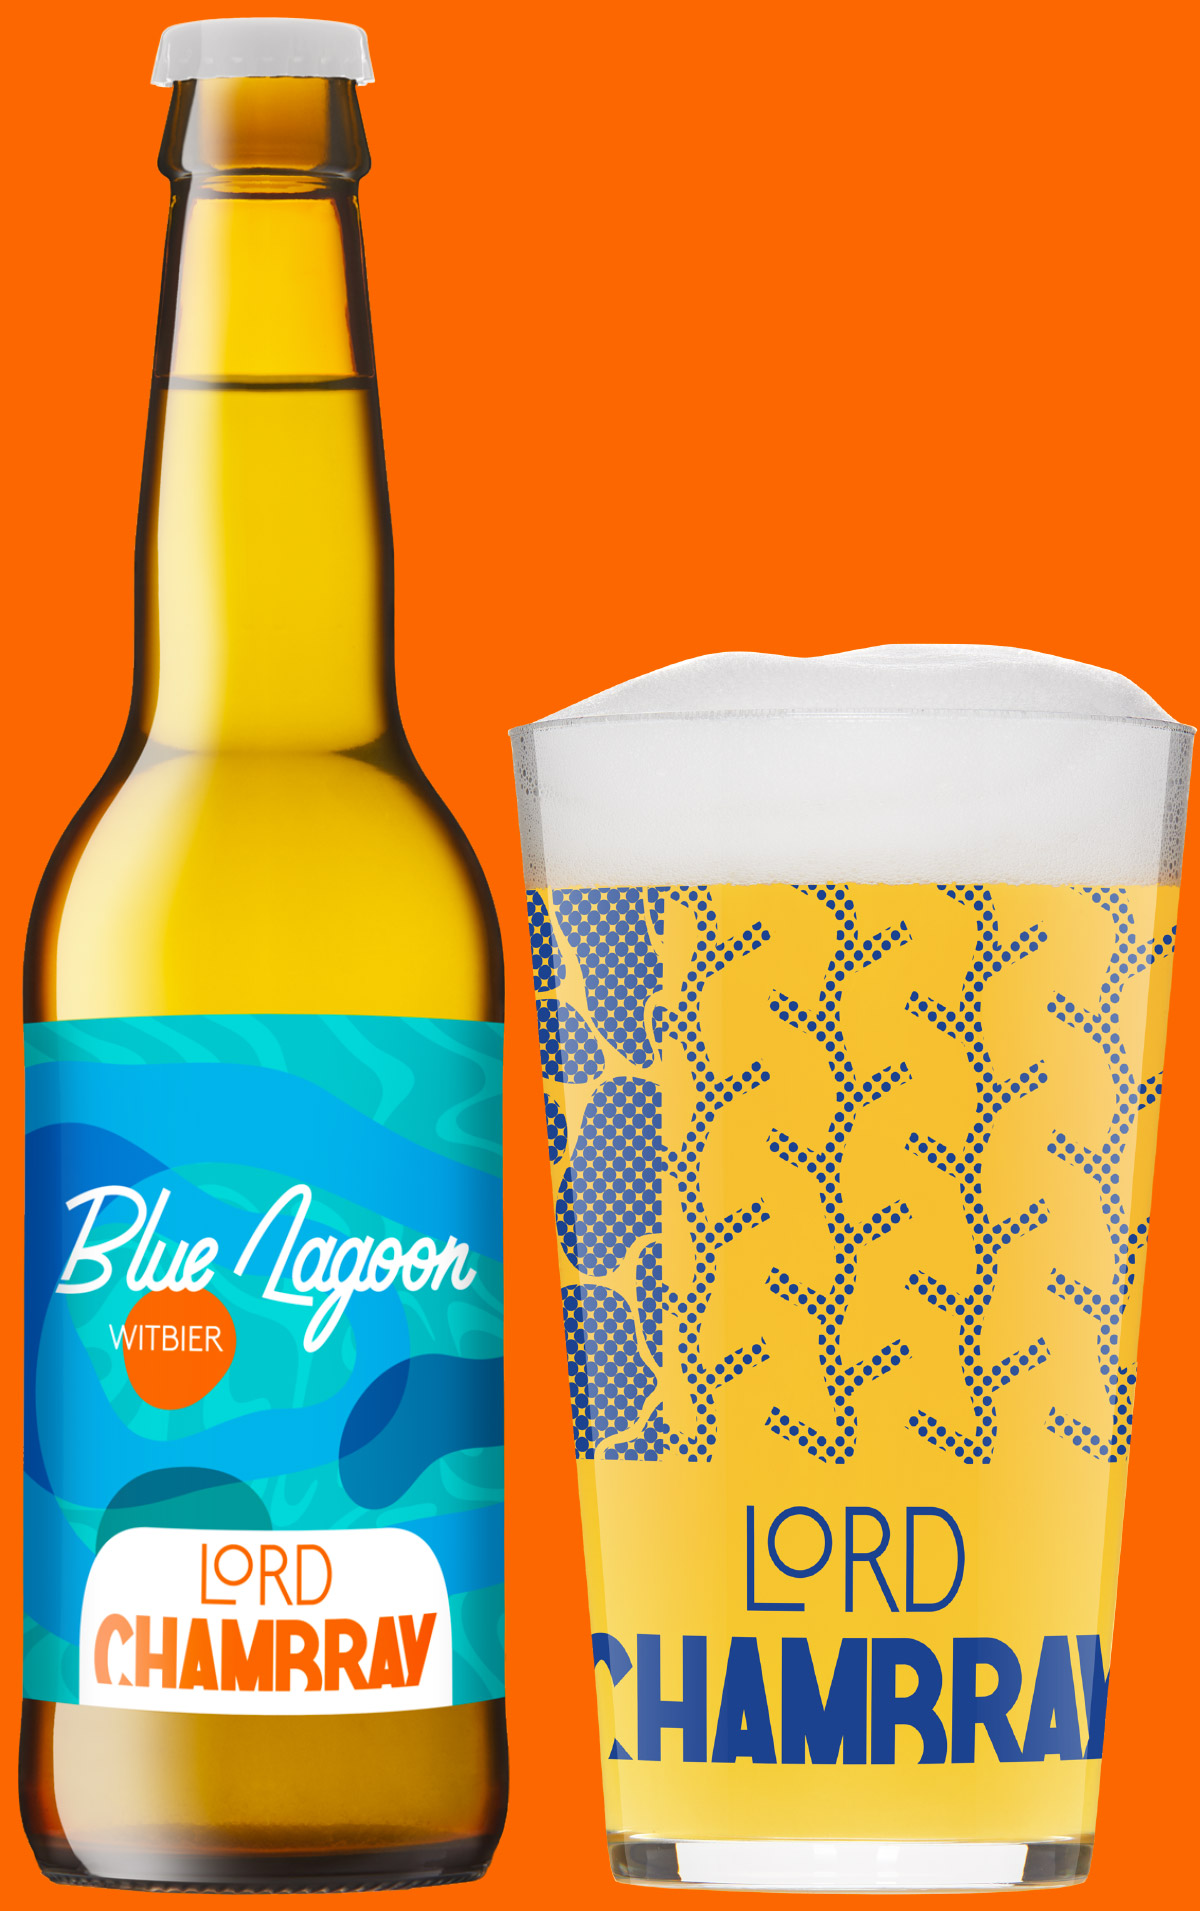 Lord Chambray – Craft Beer from Malta BLUE LAGOON